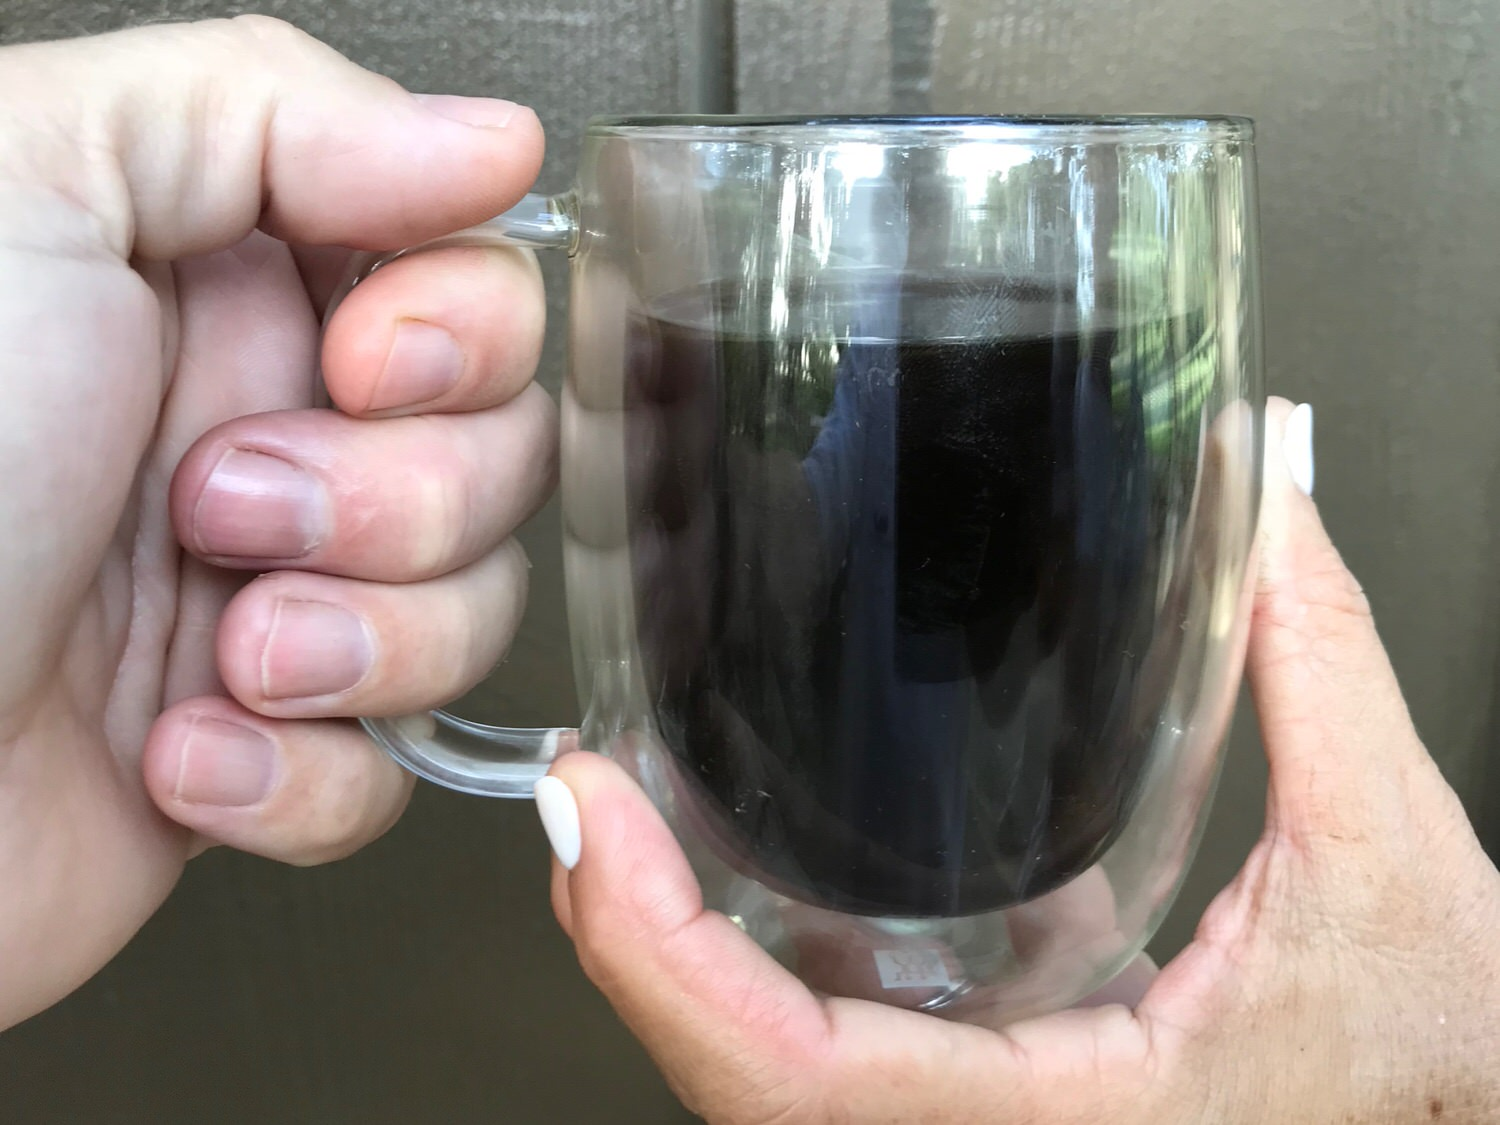 The double wall insulated glass on the ZWILLING J.A. Henckels 12 oz coffee mug is cool to the touch